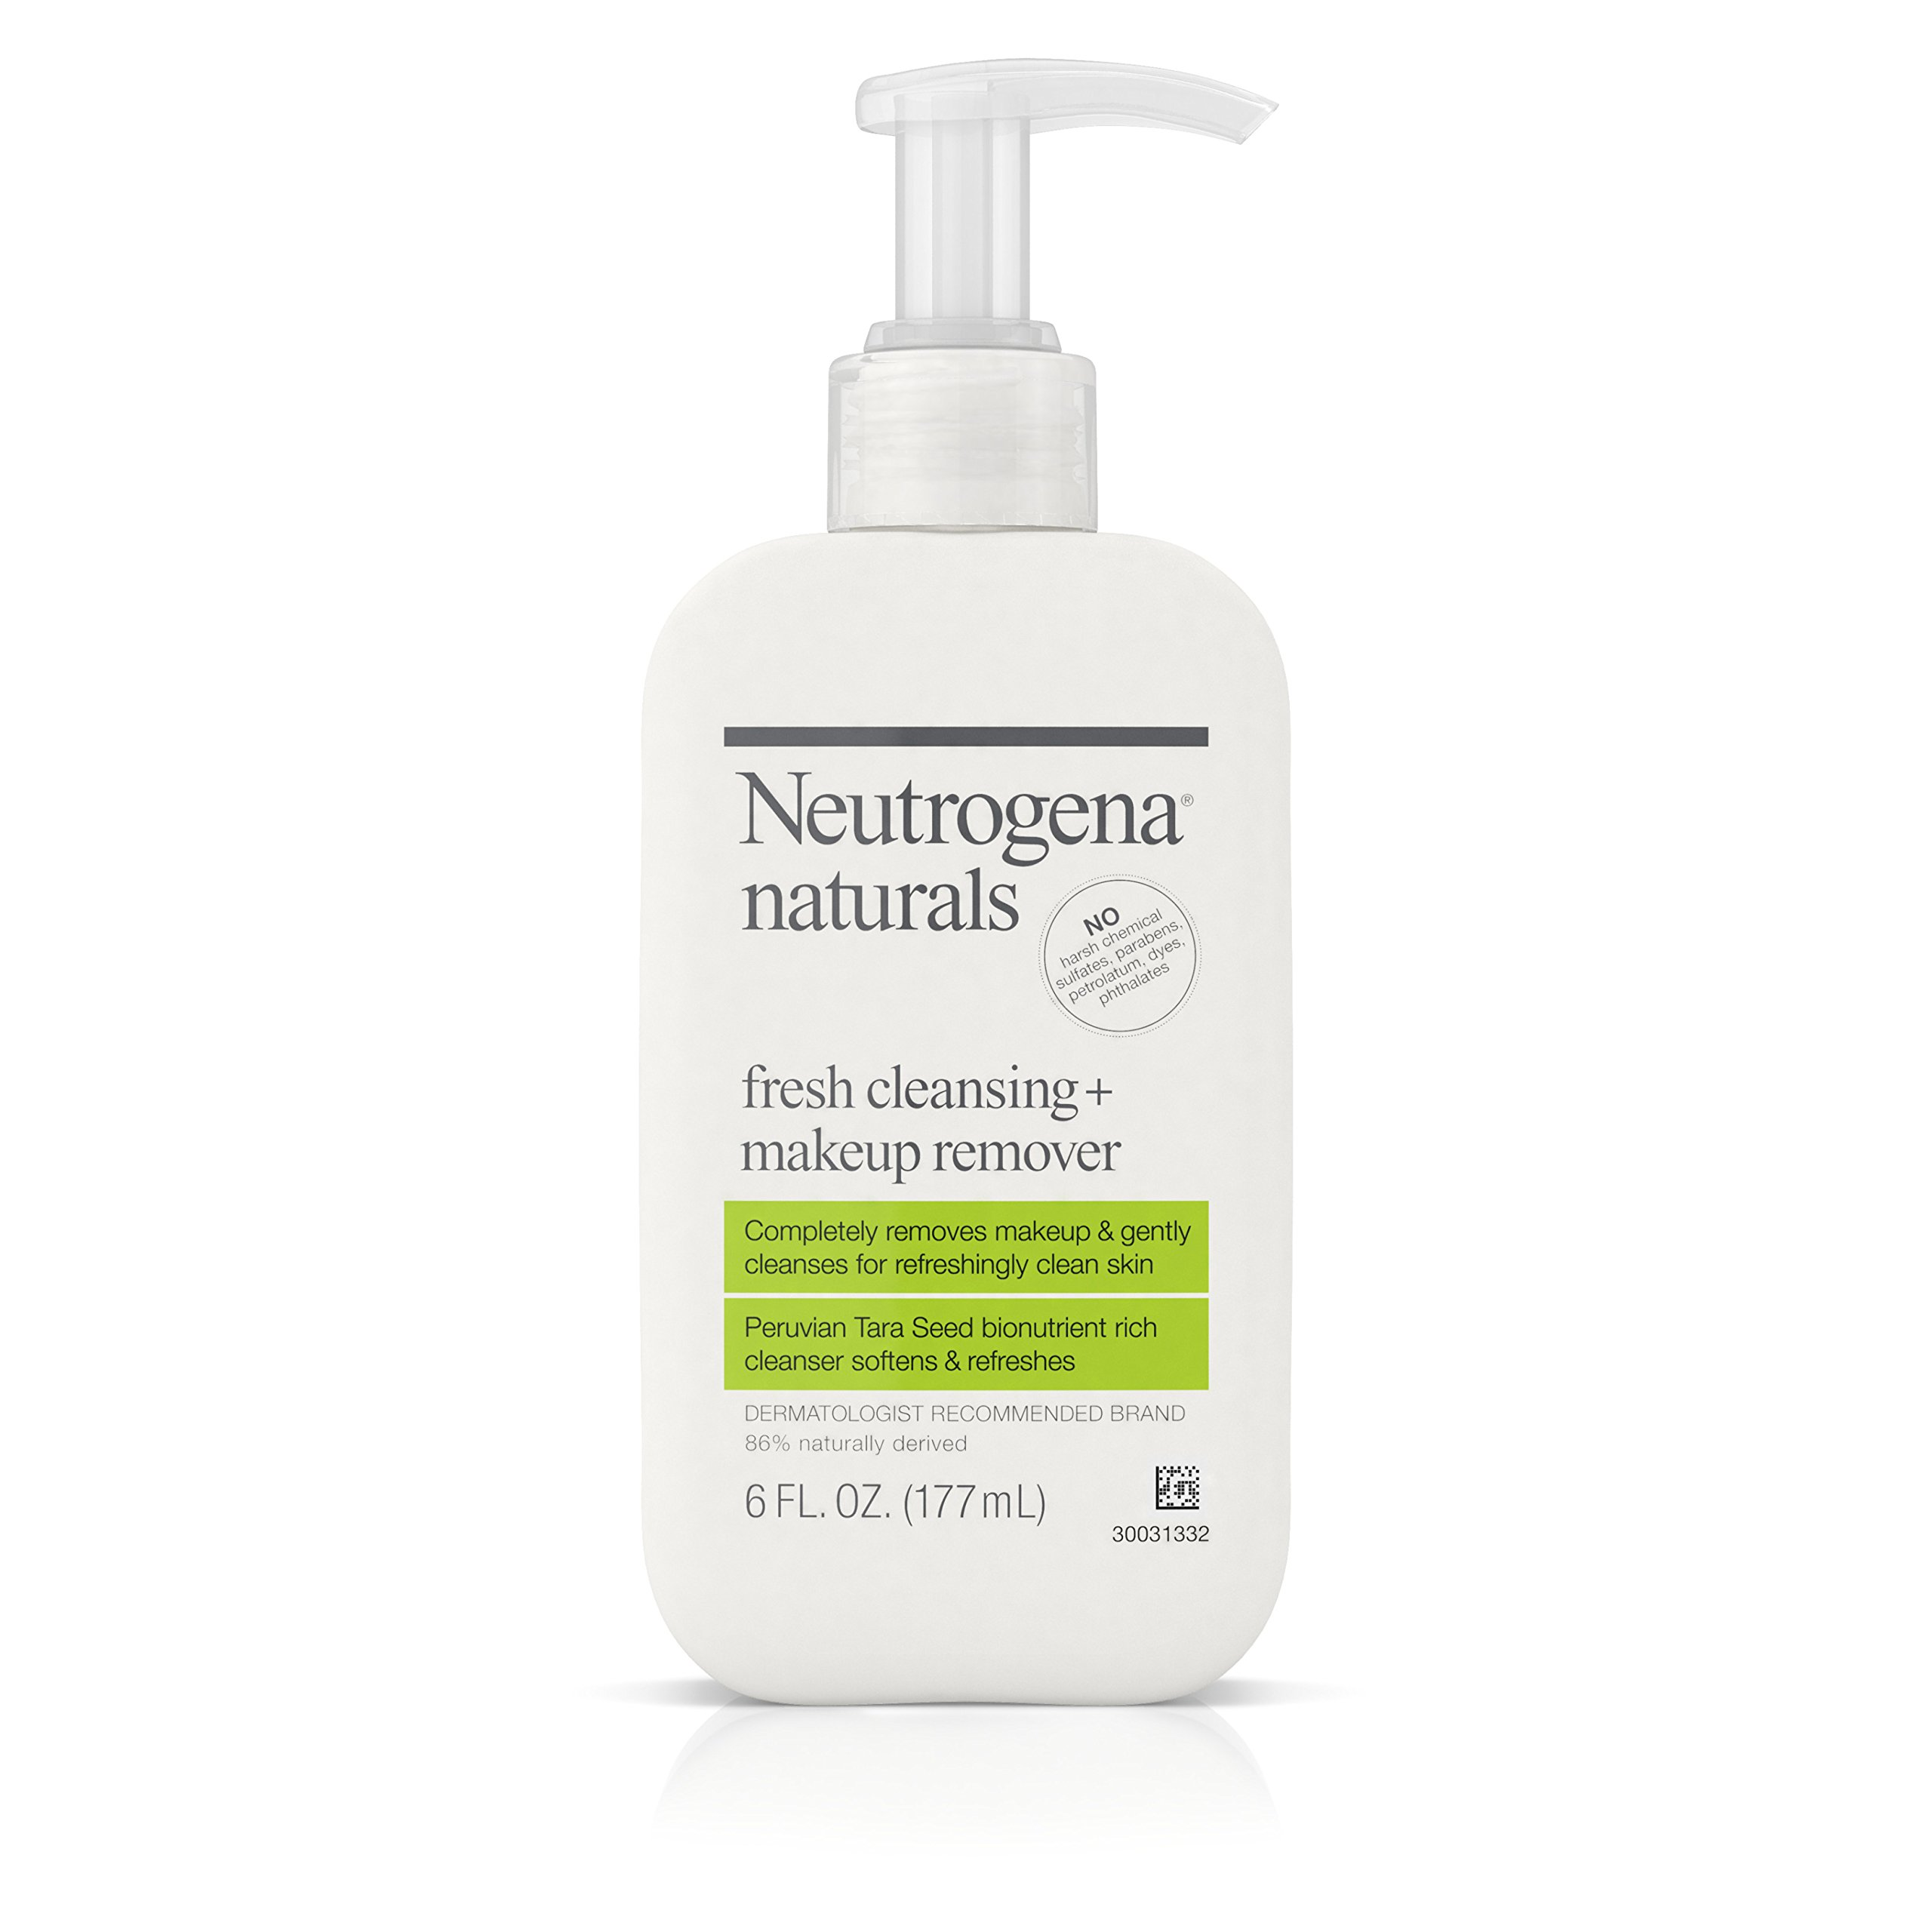 Neutrogena Naturals Fresh Cleansing Daily Face Wash + Makeup Remover with Naturally-Derived Peruvian Tara Seed, Hypoallergenic, Non-Comedogenic & Sulfate-, Paraben- & Phthalate-Free, 6 fl. oz